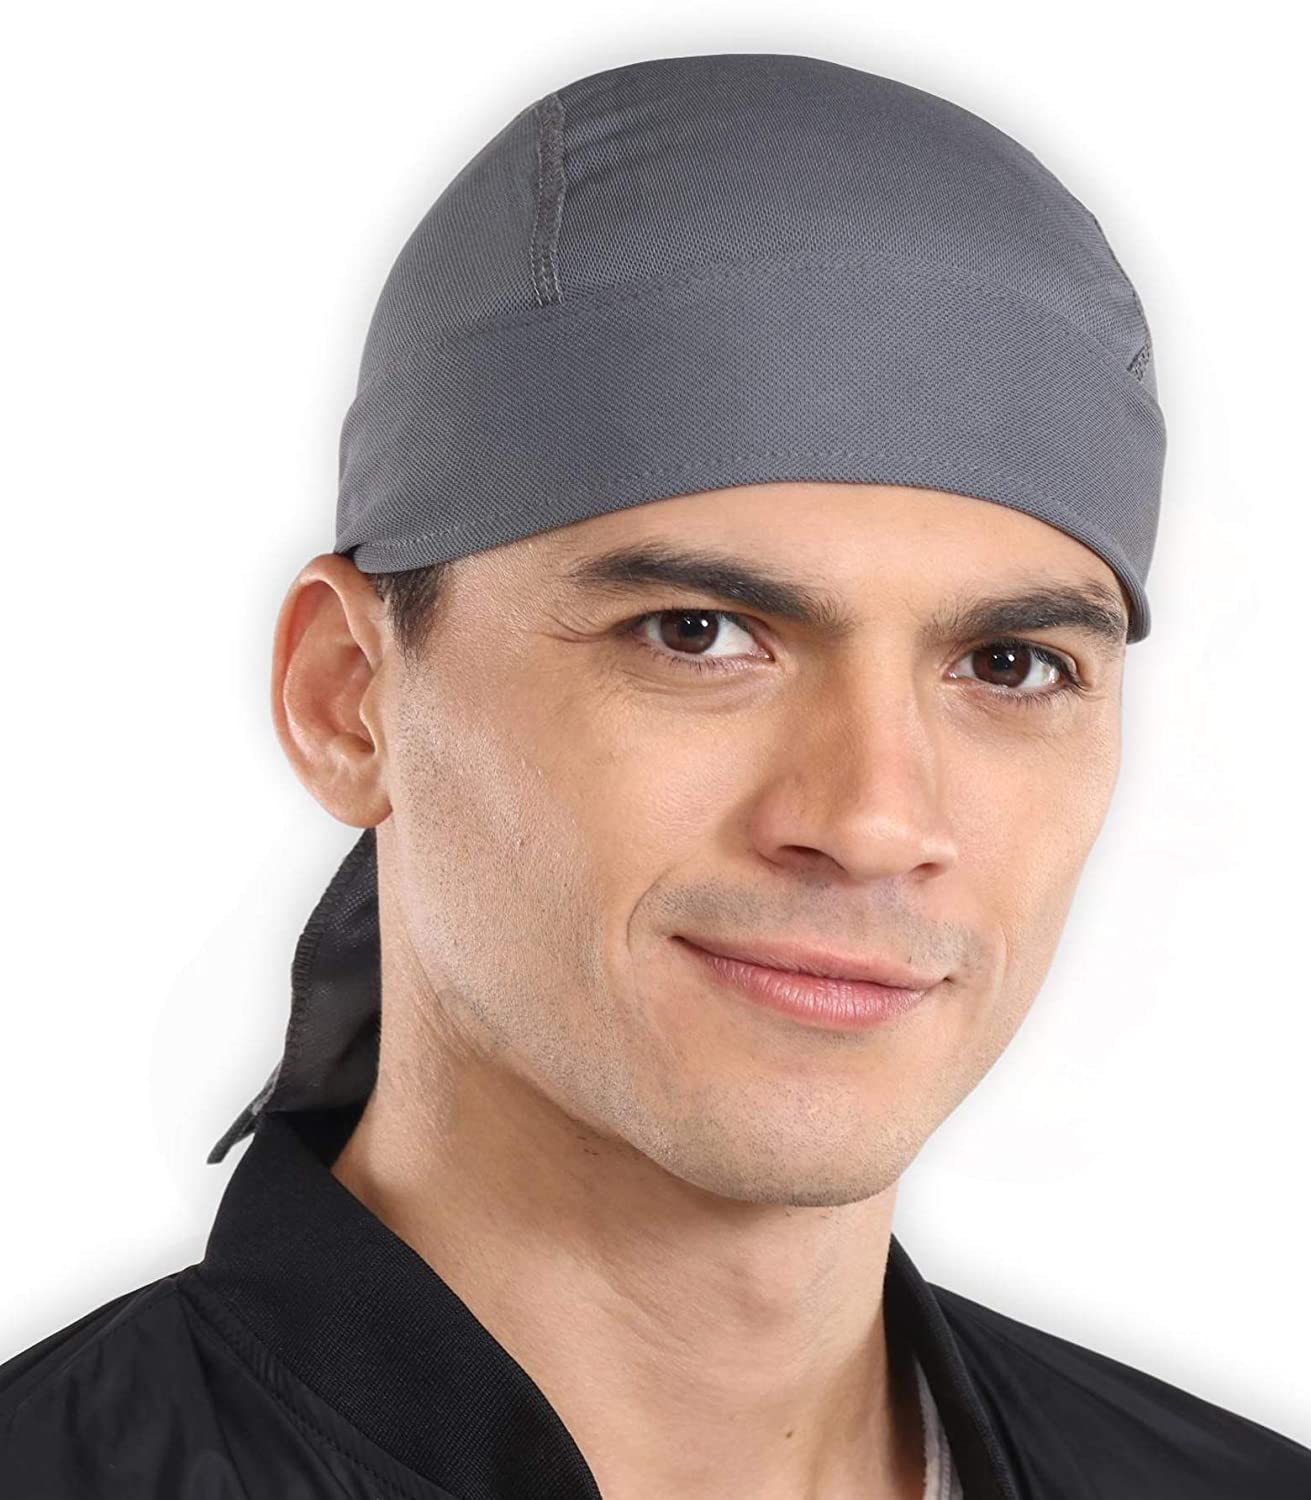 Do Rag Skull Cap Beanie for Men /& Women Sweat Wicking Cooling Helmet Liner Cooking /& Outdoor Activities Pirate Hat Bandana /& Head Wrap for Motorcycling Stretchy /& Breathable Mesh Running Hiking